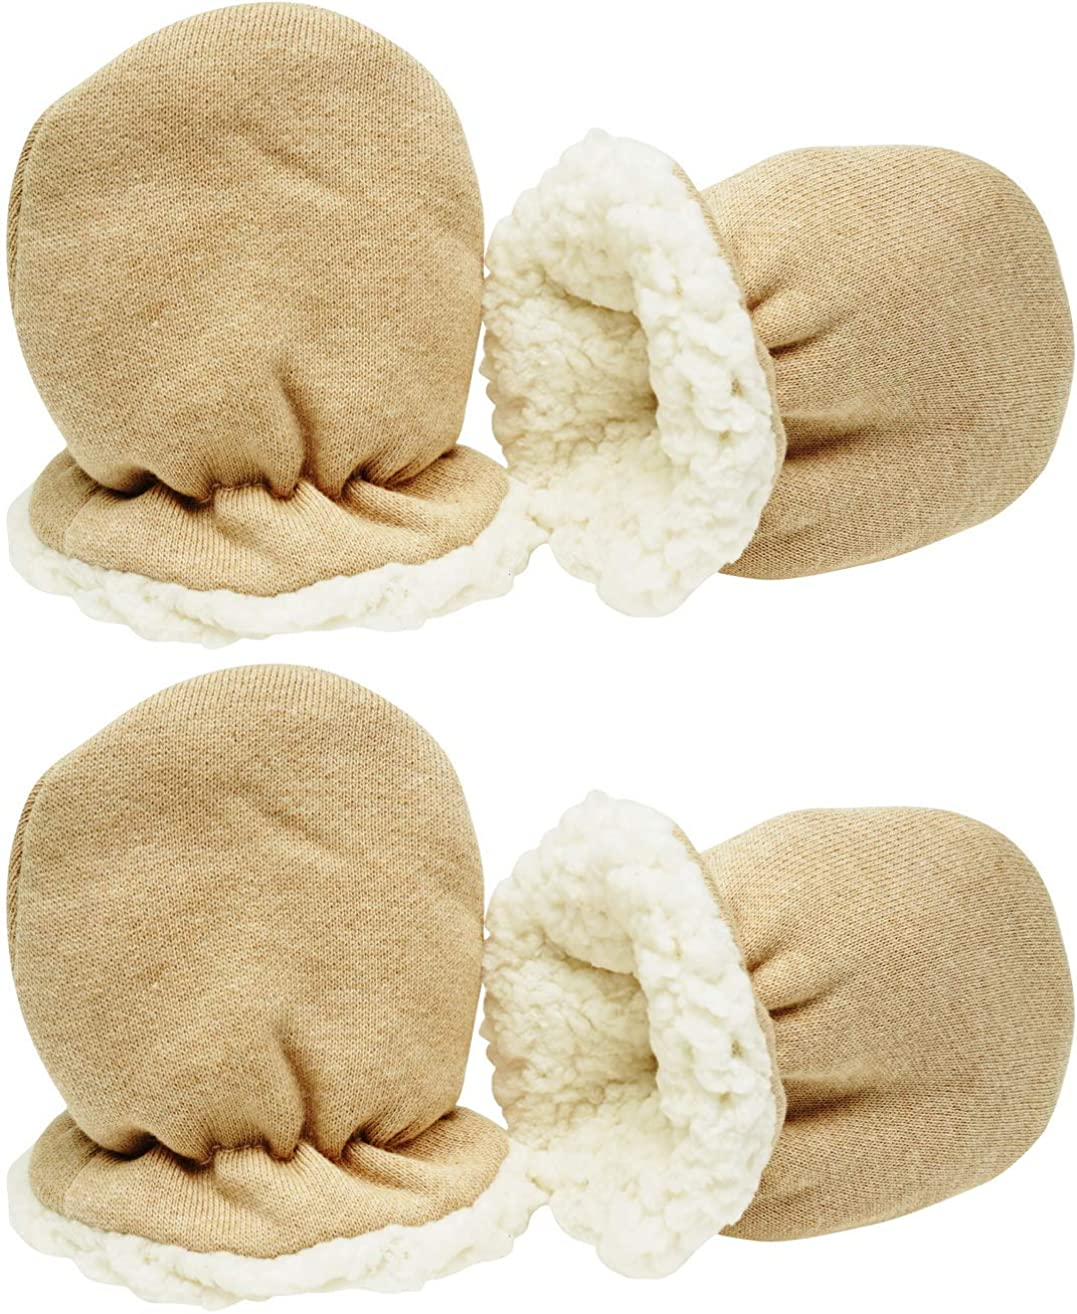 Winter Baby Mittens with Warm Sherpa Lined Fleece 0-24 Months